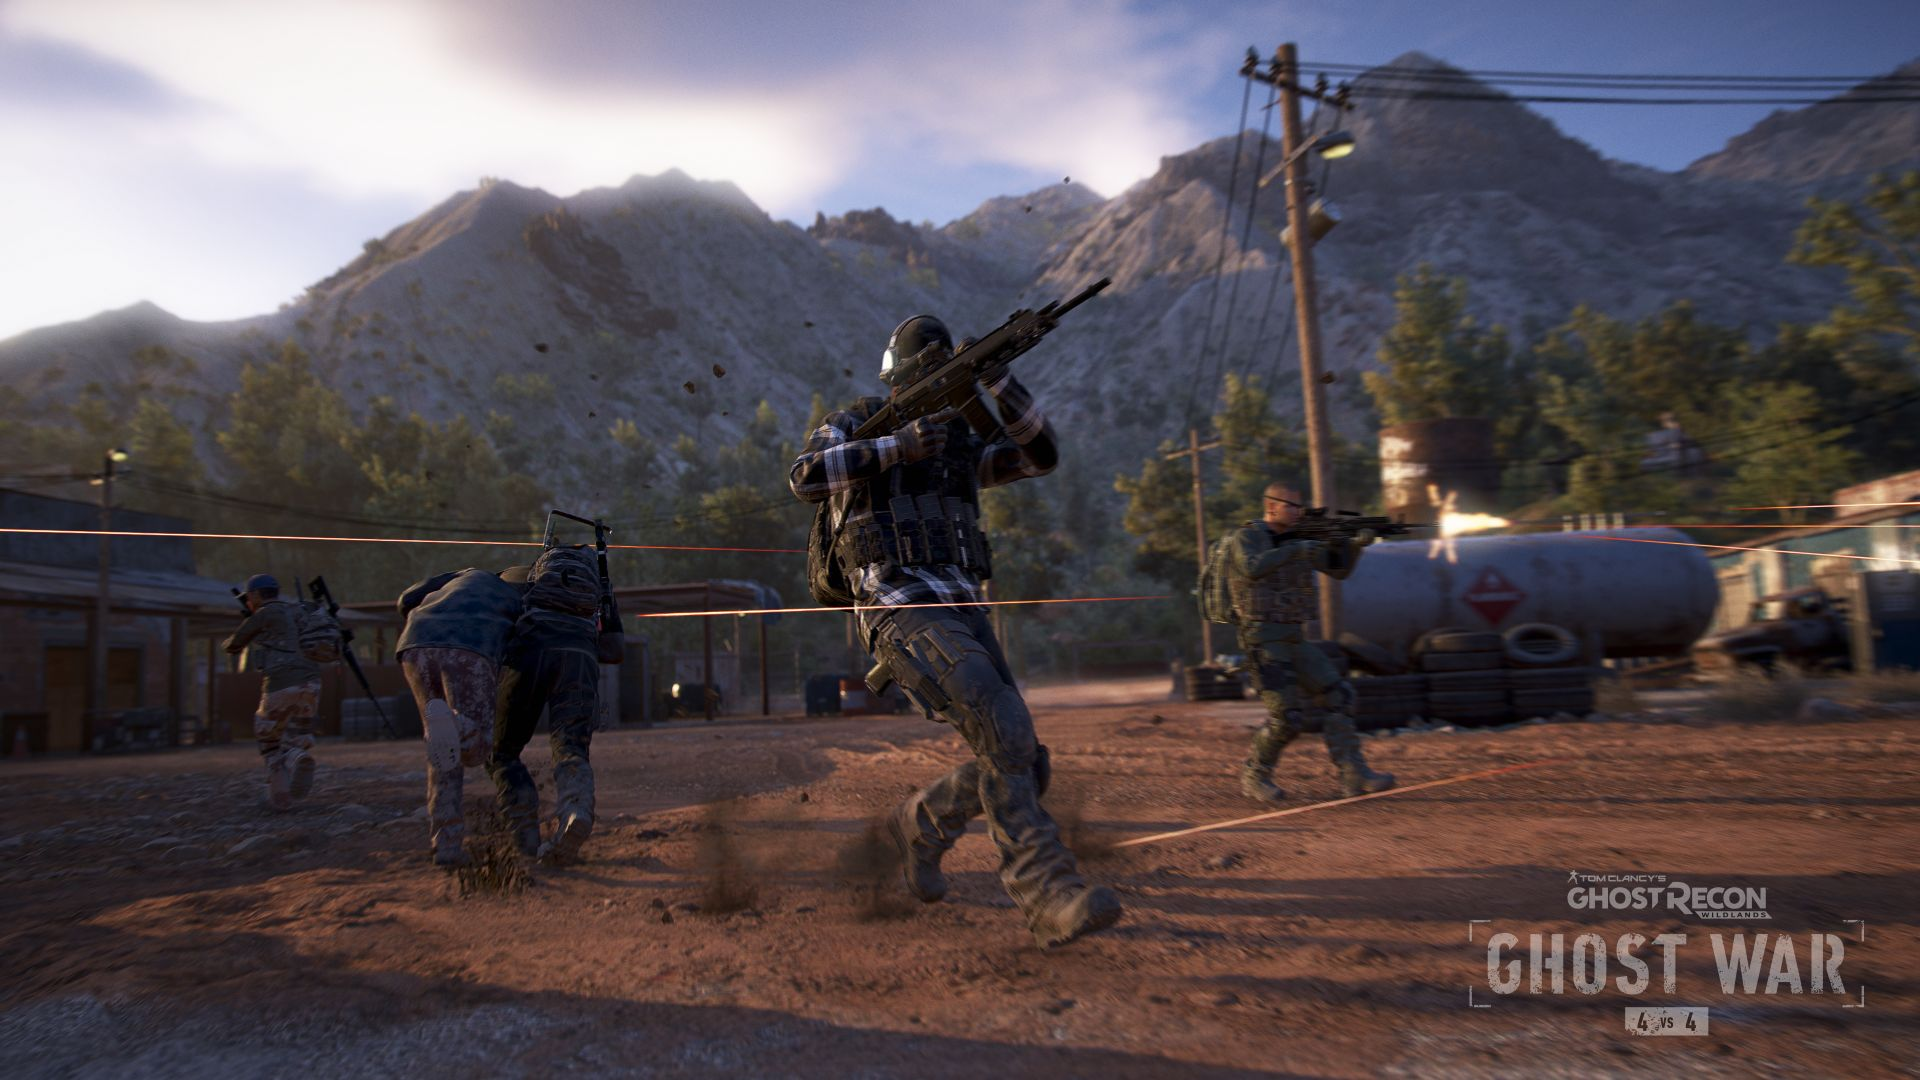 ghost recon wildlands new pvp mode releases on january 25th « video